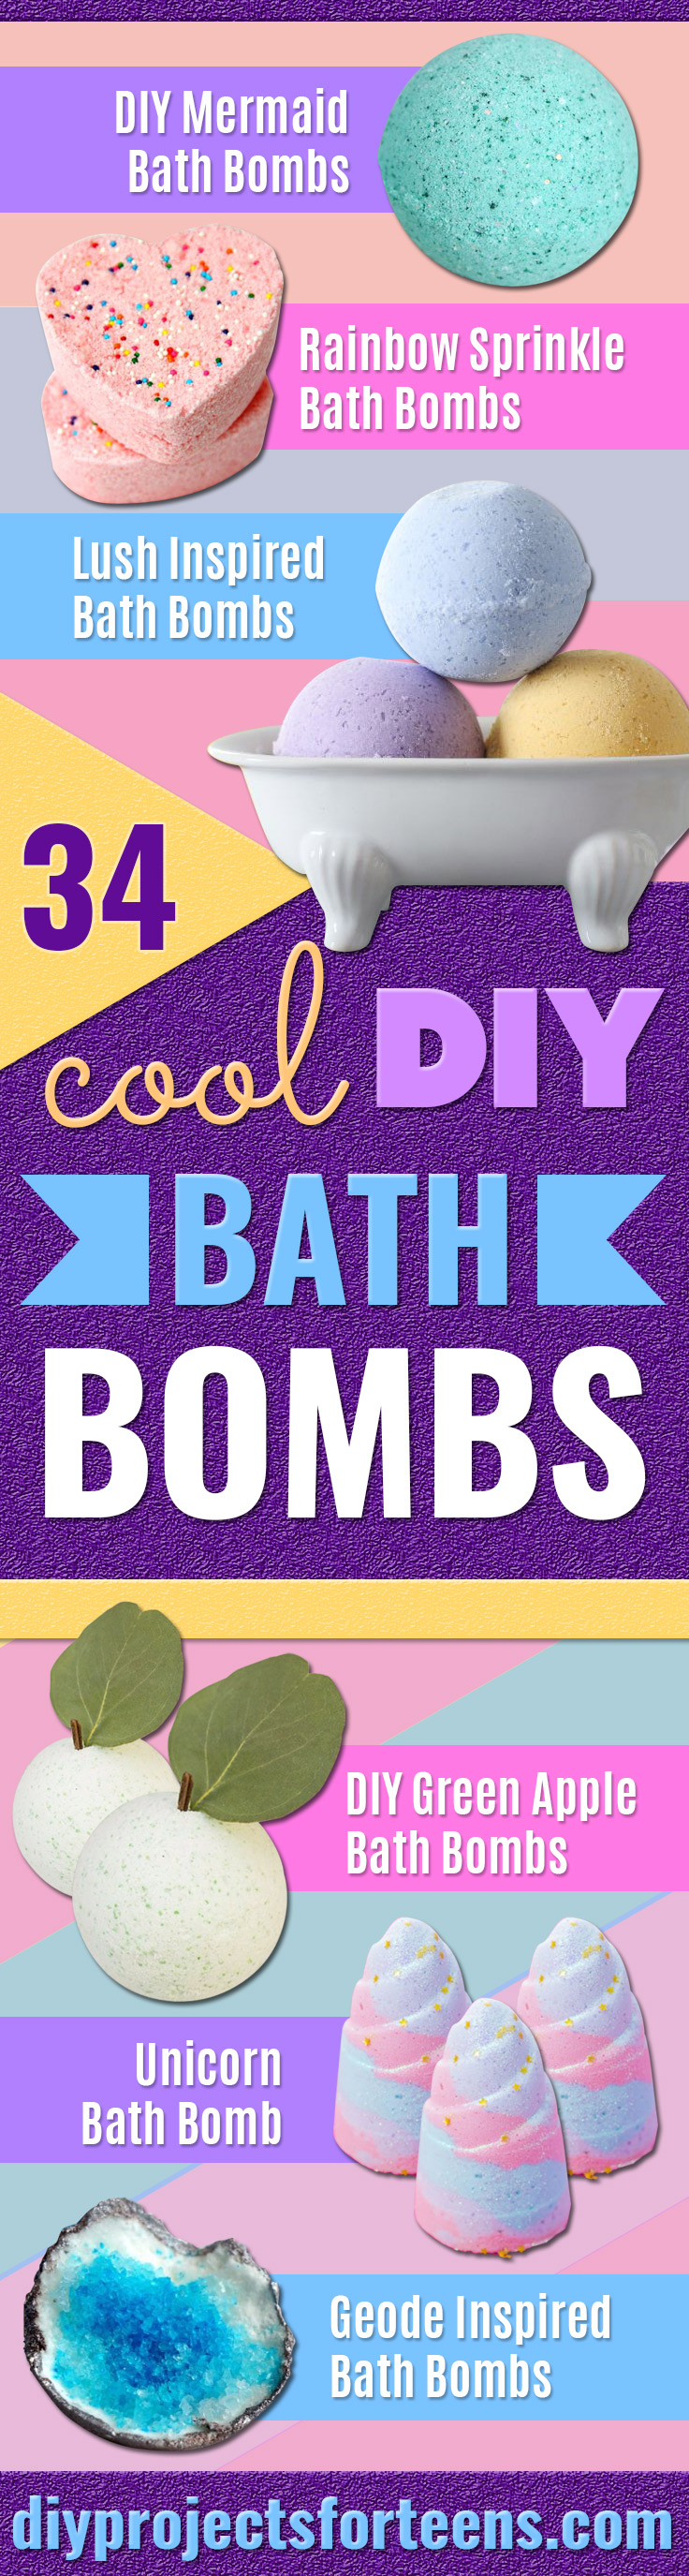 Cool DIY Bath Bombs to Make At Home - Rose Milk Bath Bombs - Recipes and Tutorial for How To Make A Bath Bomb - Best Bathbomb Ideas - Fun DIY Projects for Women, Teens, and Girls | DIY Bath Bombs Recipe and Tutorials | Make Cheap Gifts Like Lush Bath Bombs #bathbombs #teencrafts #diyideas